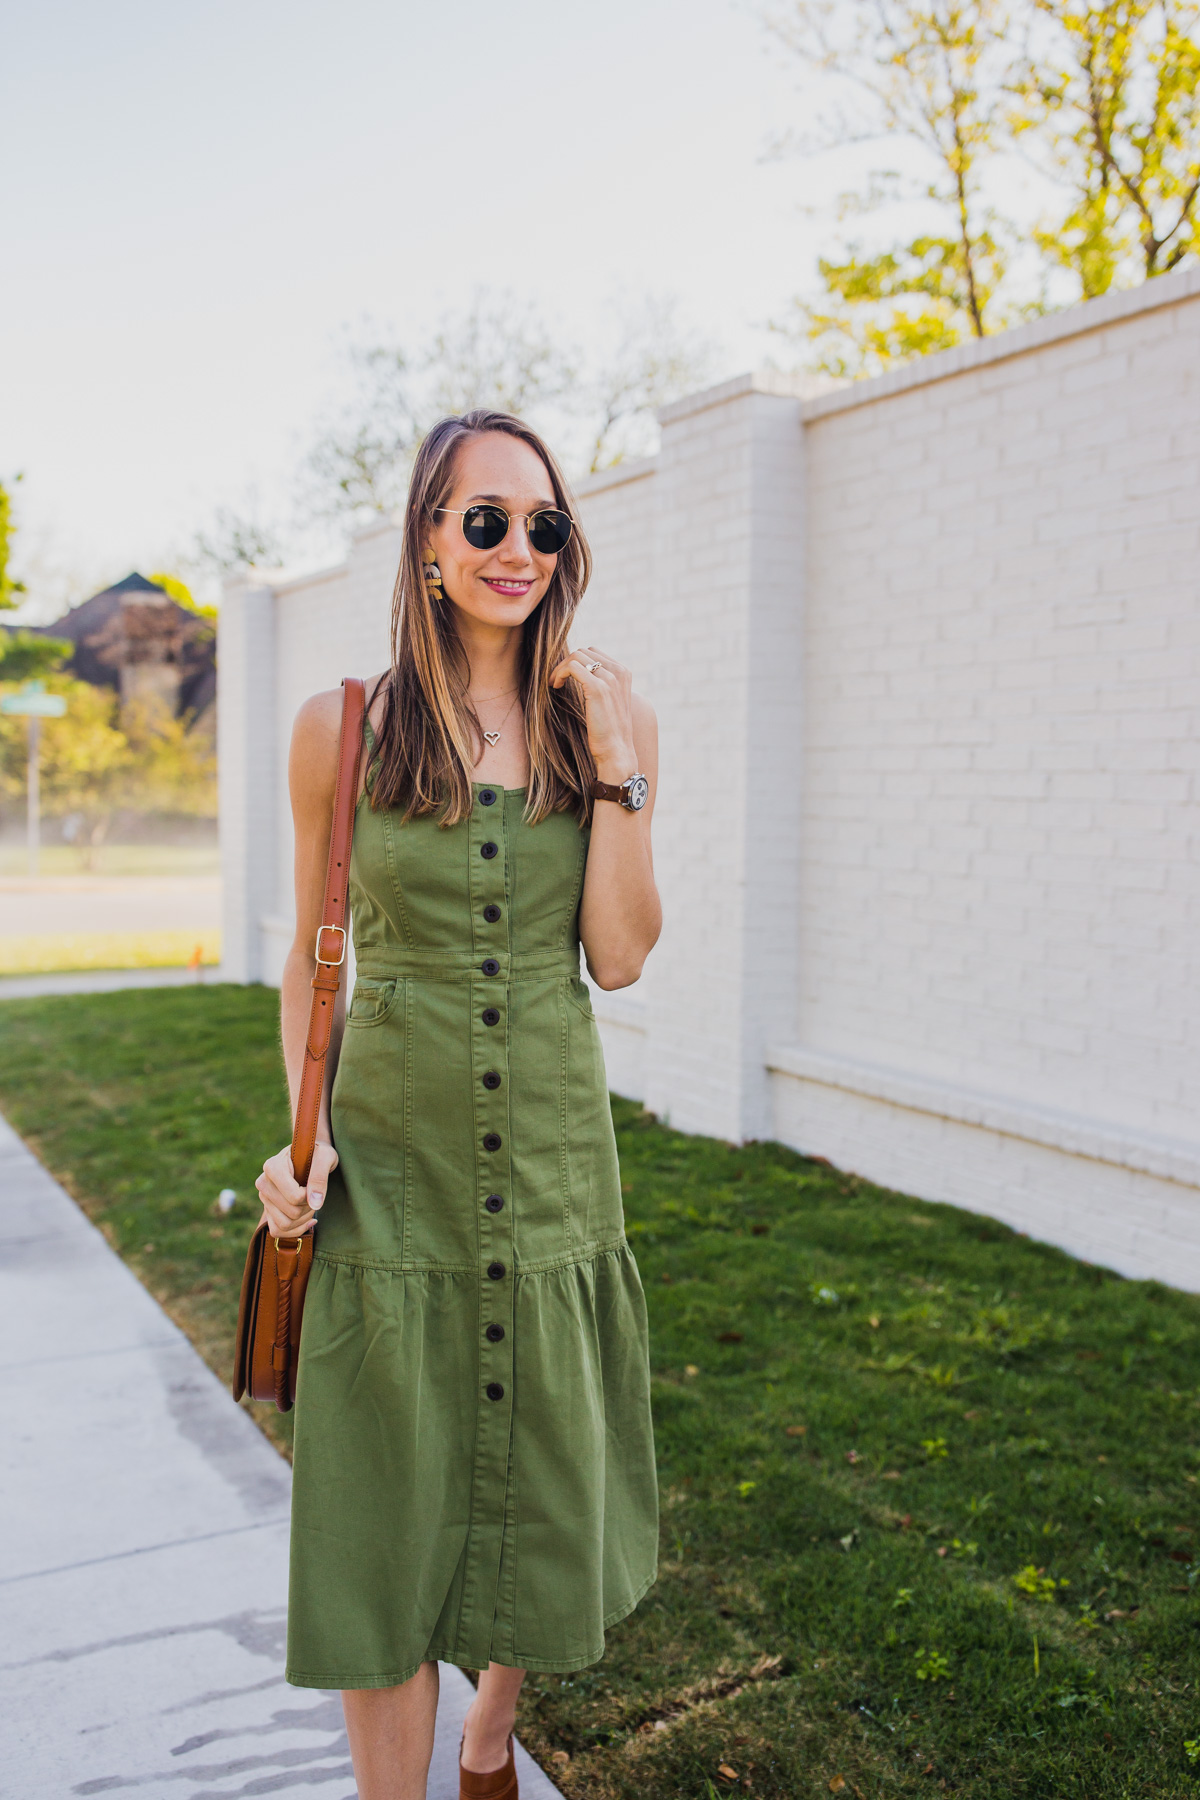 mom style: a midi dress outfit